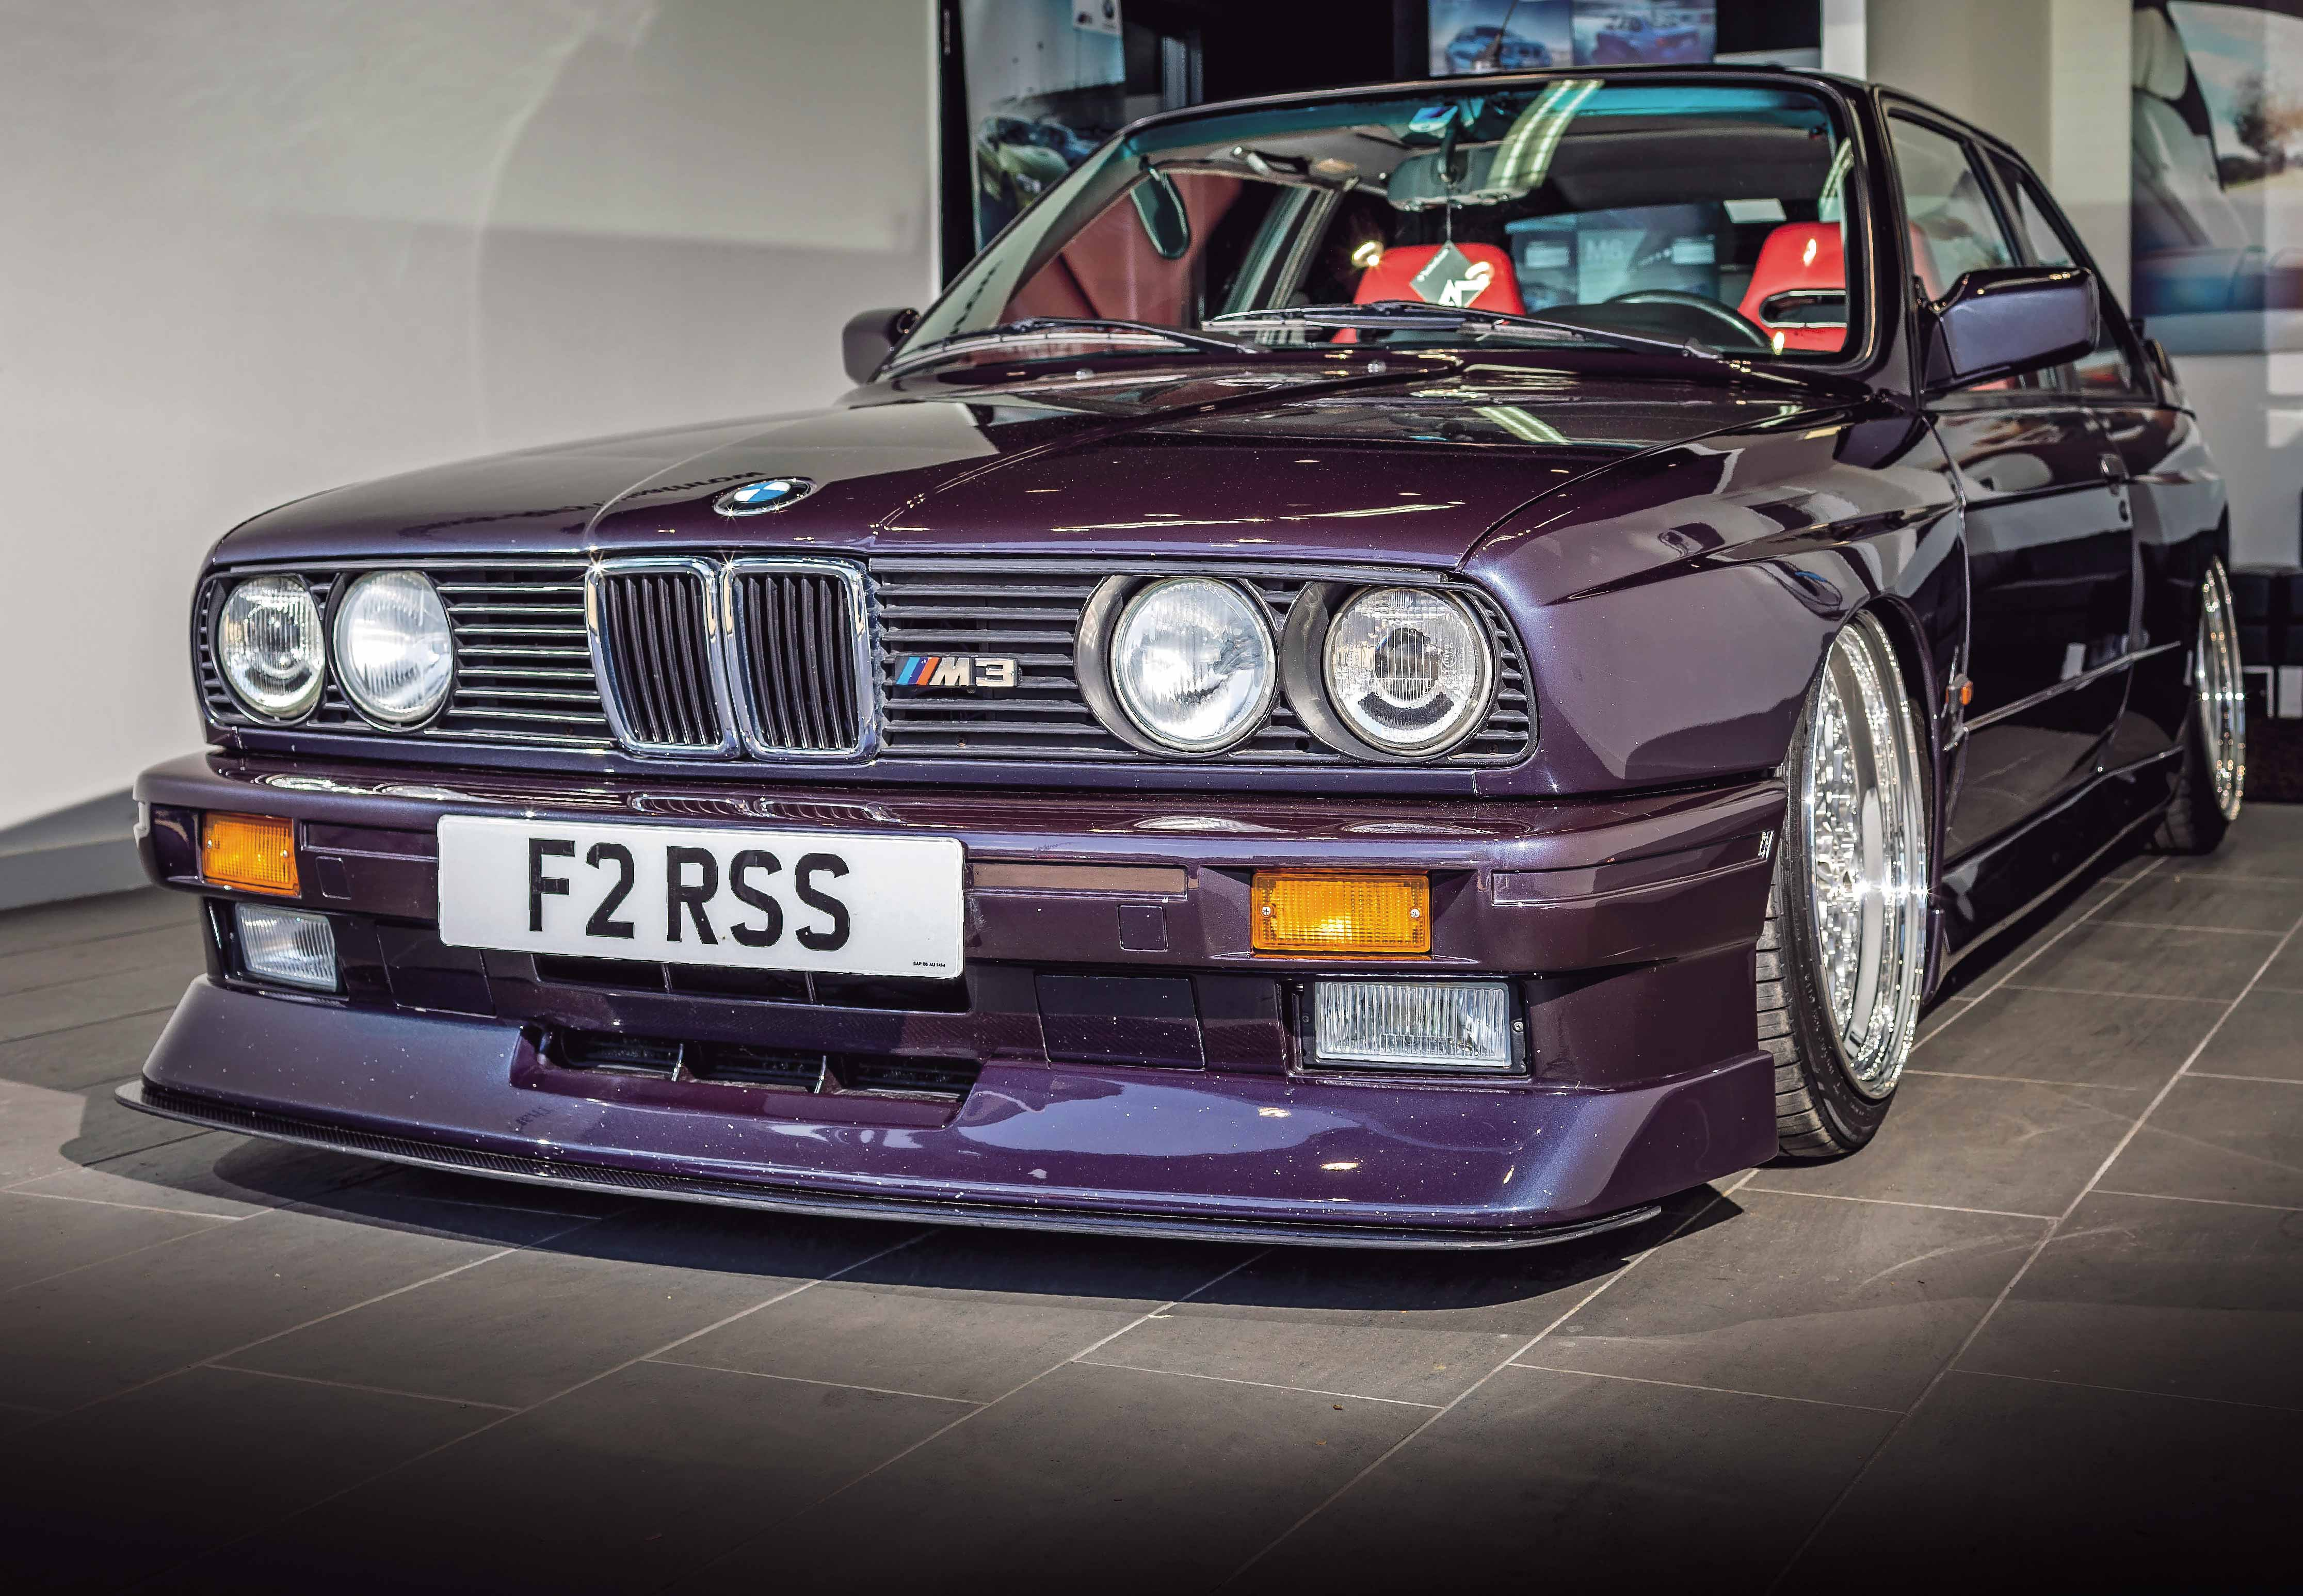 Stunning Air Lift Performance 3h Air Ride Setup Bmw M3 E30 Custom Styled Legend Drive My Blogs Drive